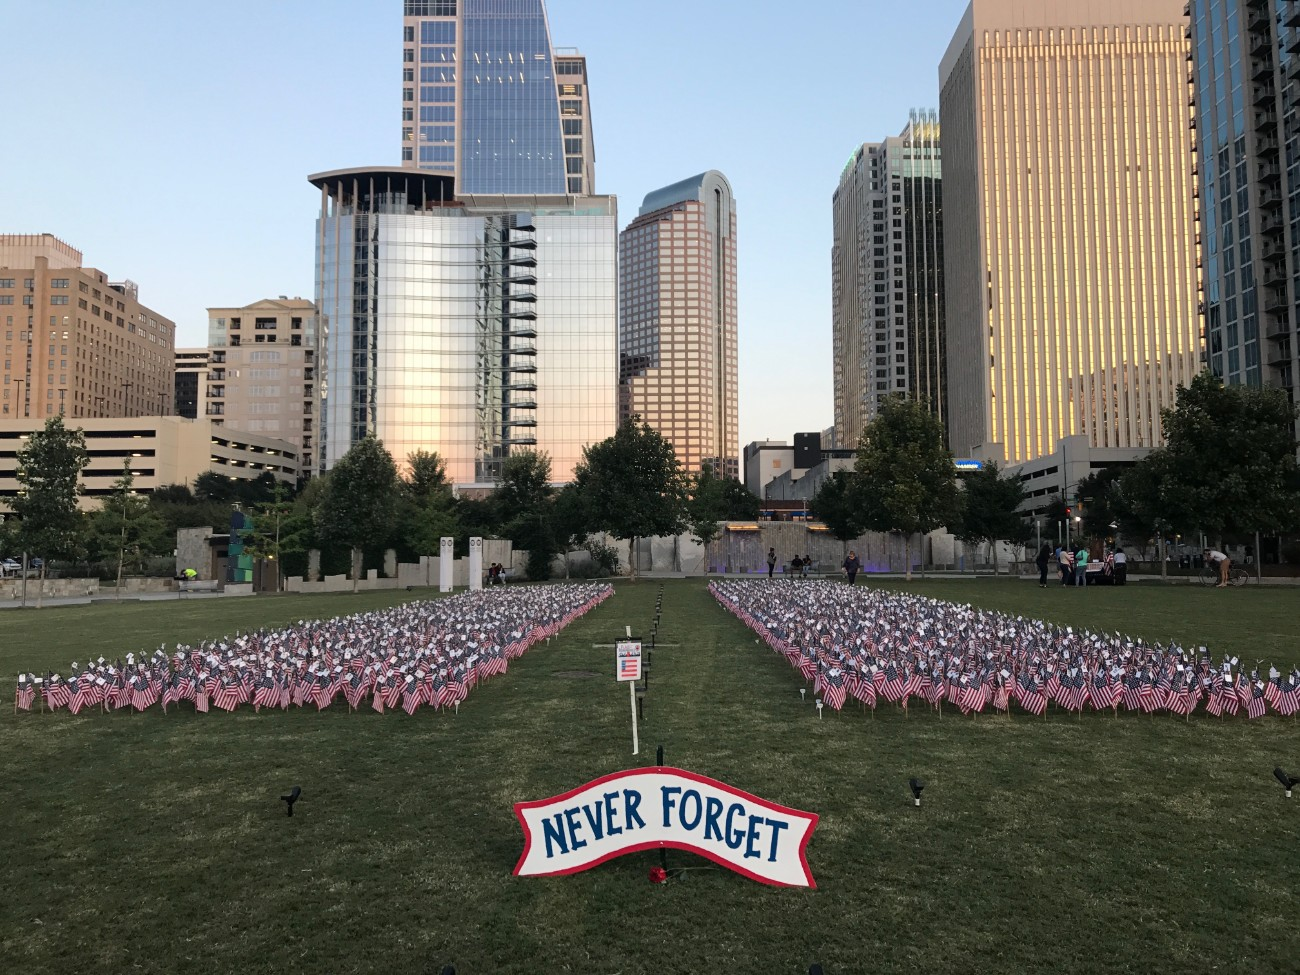 Weekday Planner: 16 things to do this week, including paying your respects at a 9/11 memorial, eating bottomless mussels and taking in the Dilworth Home Tour